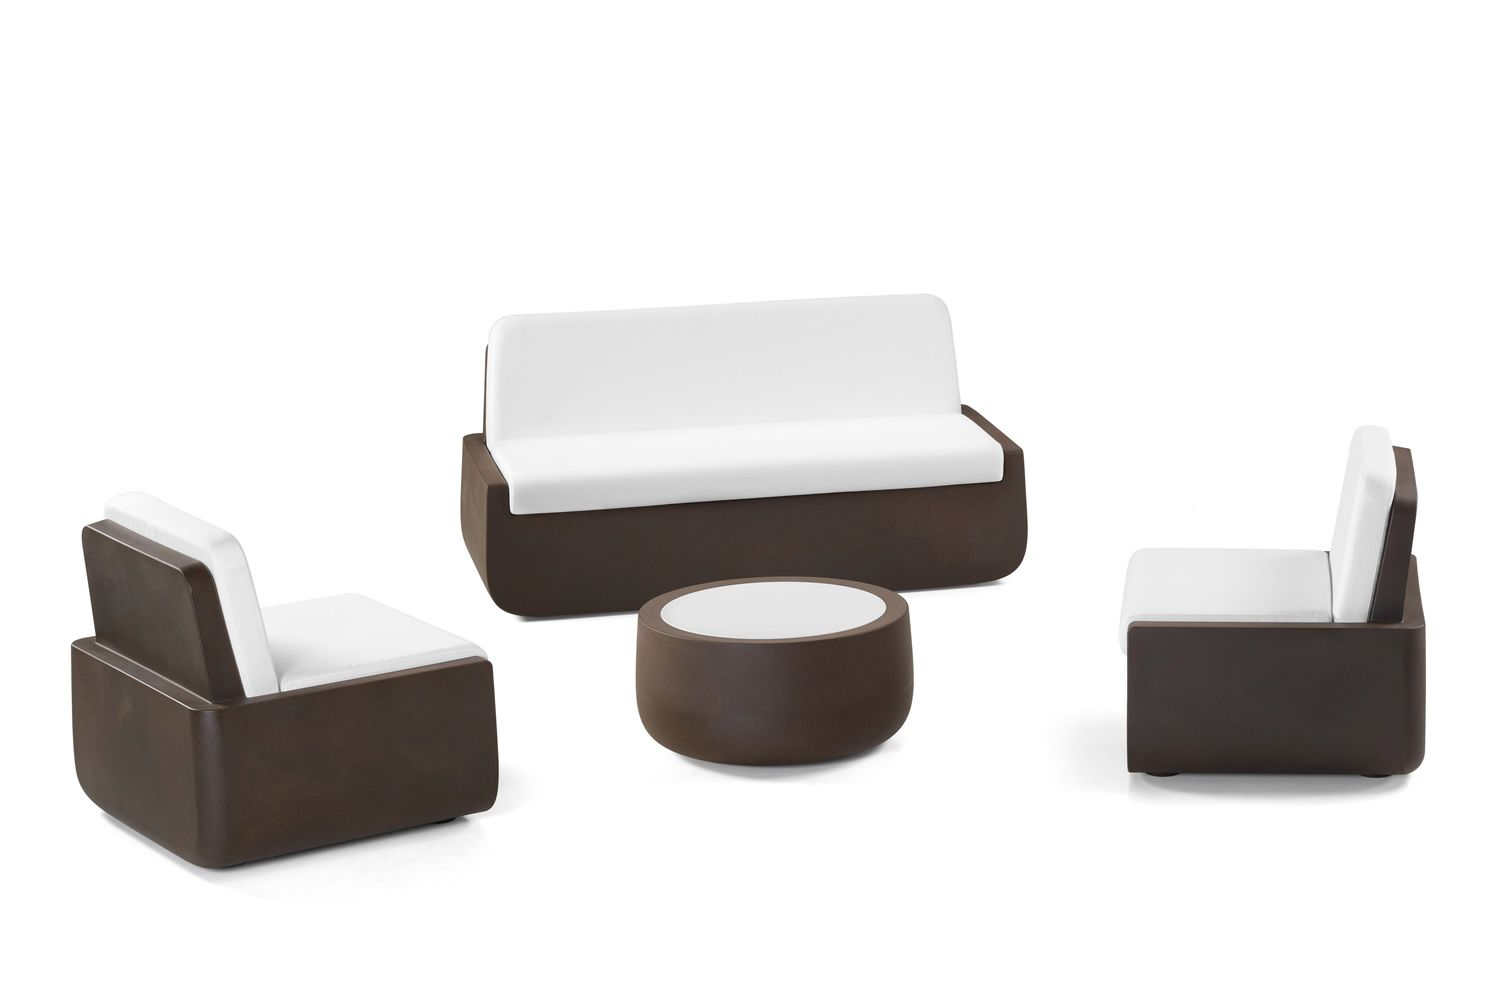 Garden set Bold by Plust composed by sofa, armchairs and coffee table